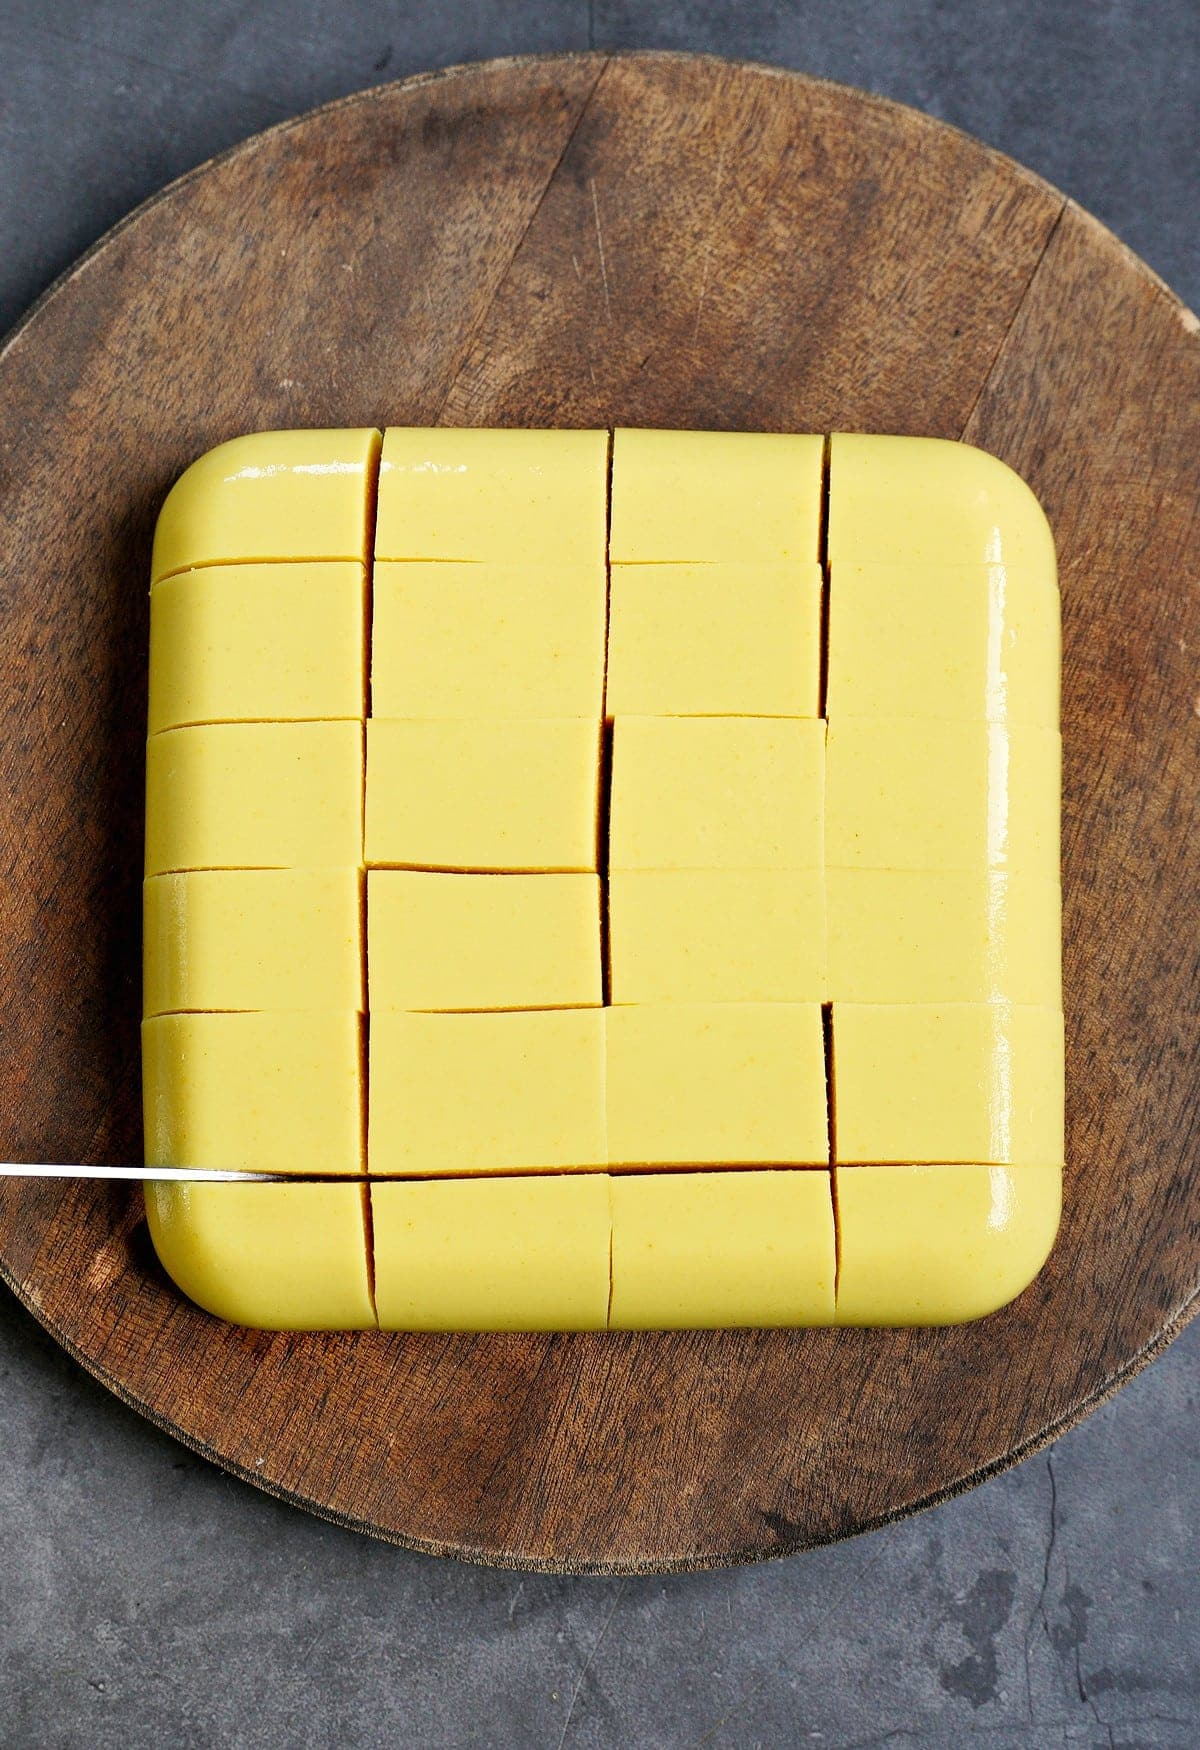 slicing a block of homemade yellow soy-free tofu with a knife on wooden round cutting board